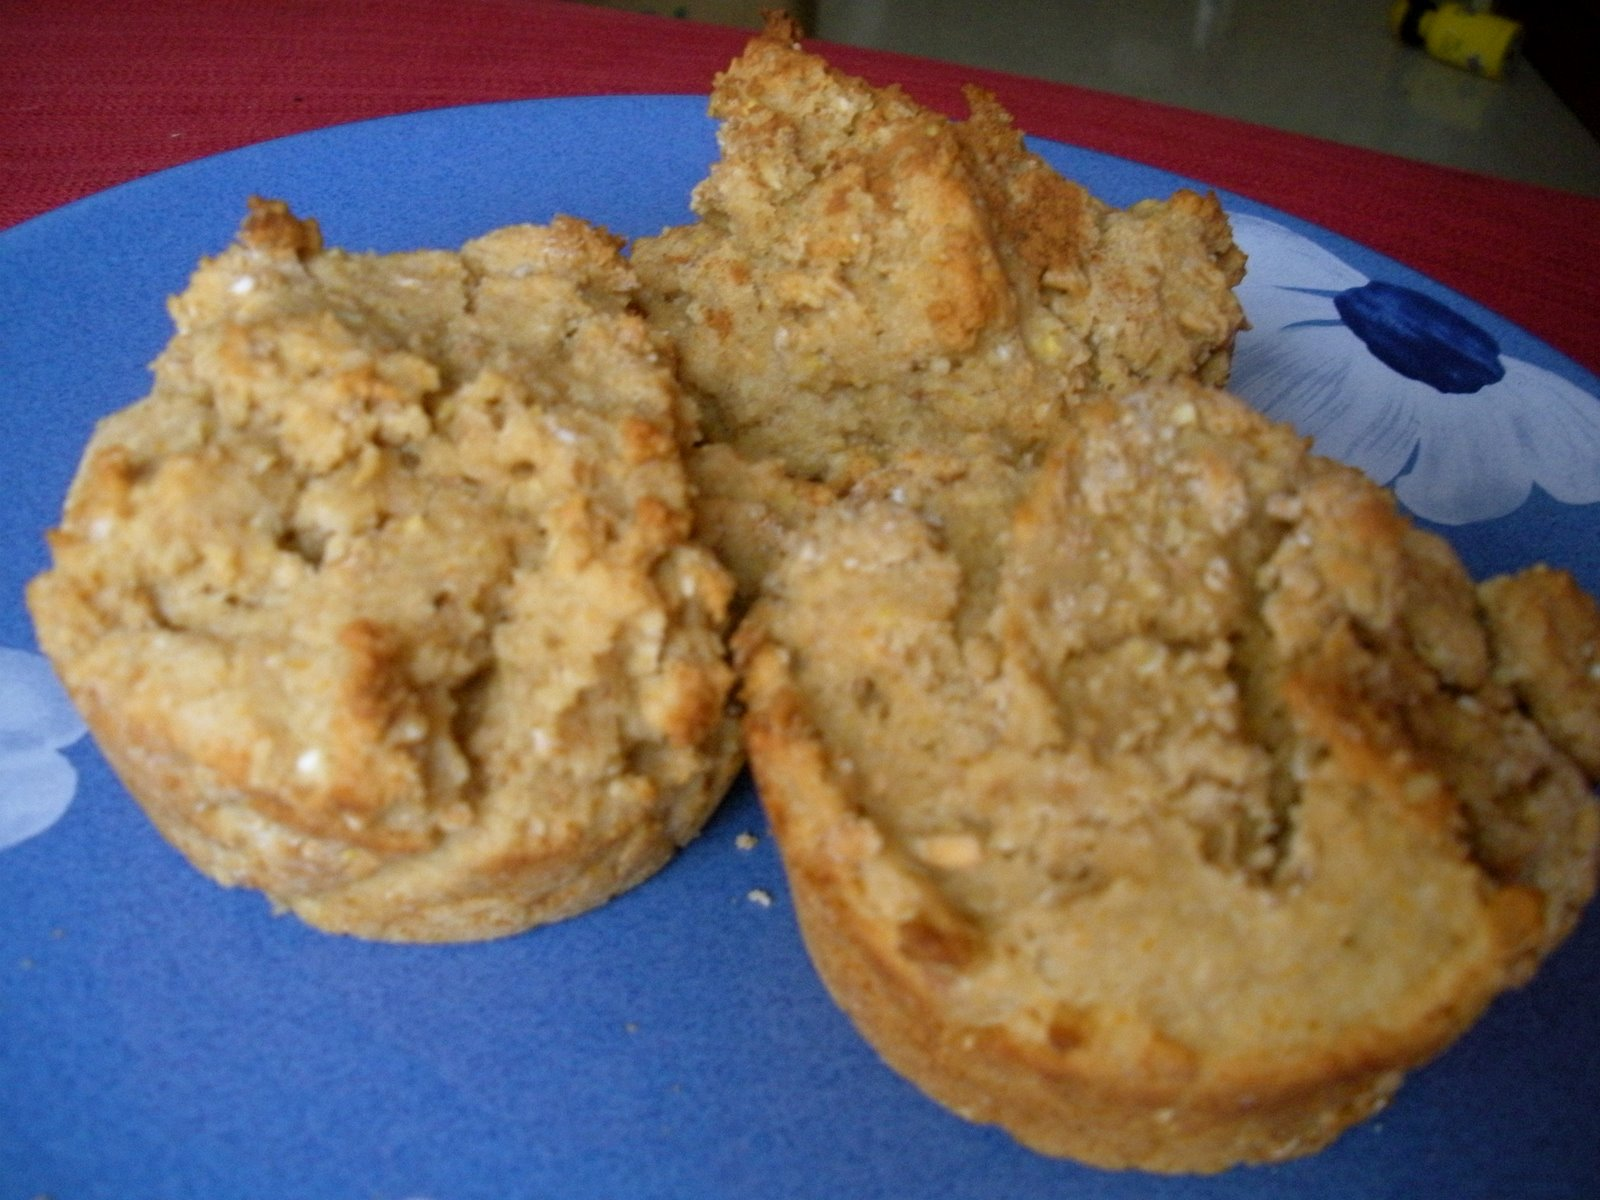 Whole Grain Muffins recipe